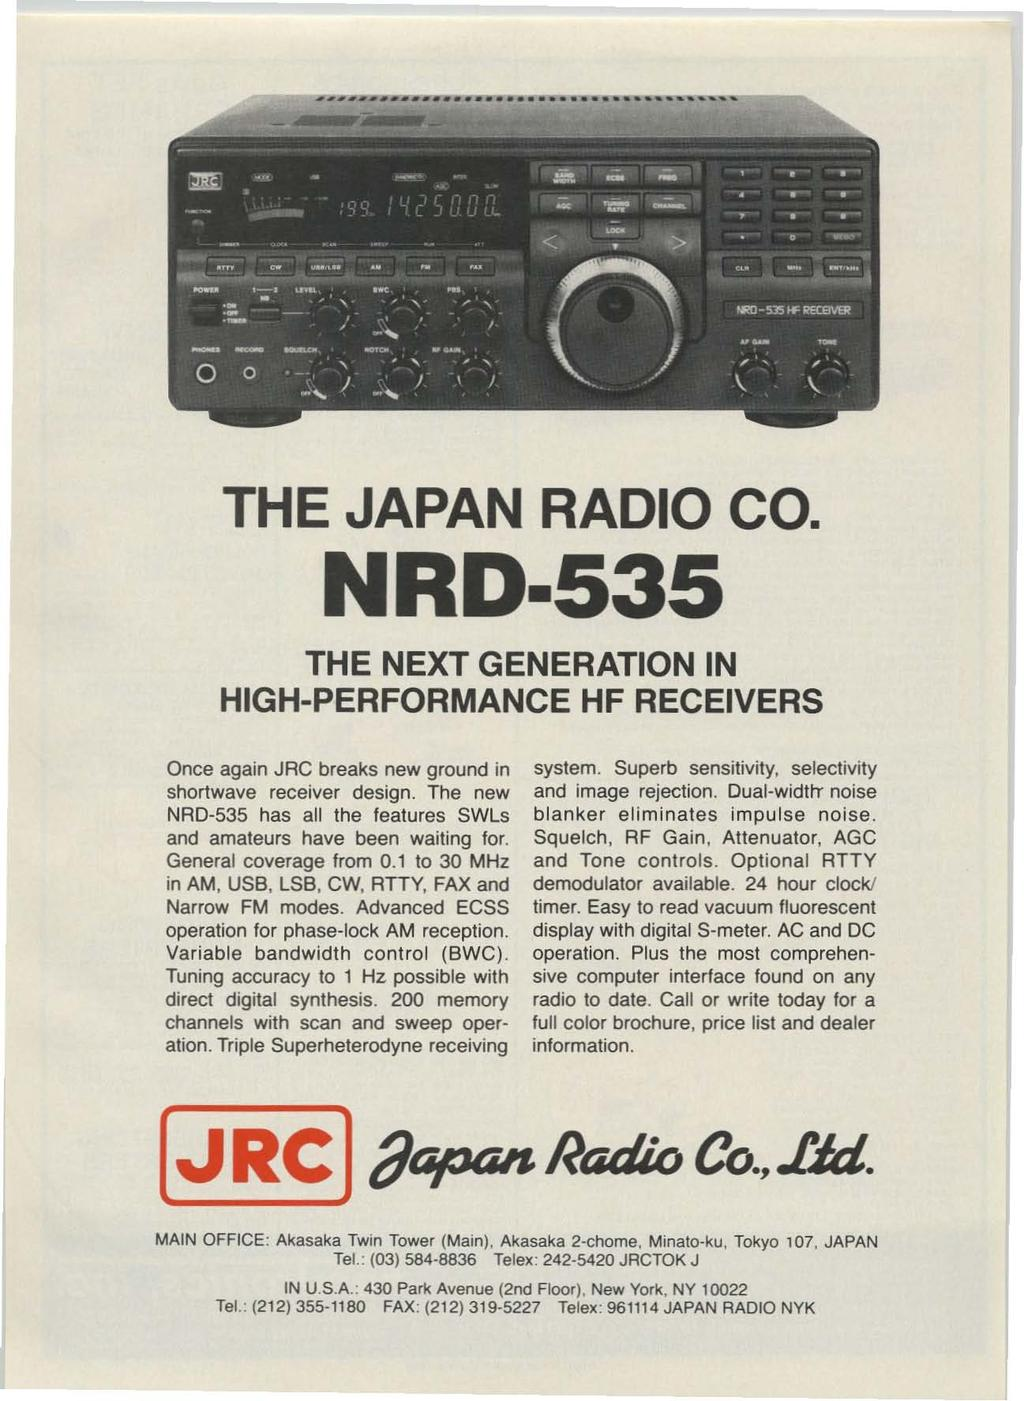 """,."", "",.. THE JAPAN RADO CO. NRD 535 THE NEXT GENERATON N HGH-PERFORMANCE HF RECEVERS Once again JRC breaks new ground in shortwave receiver design."